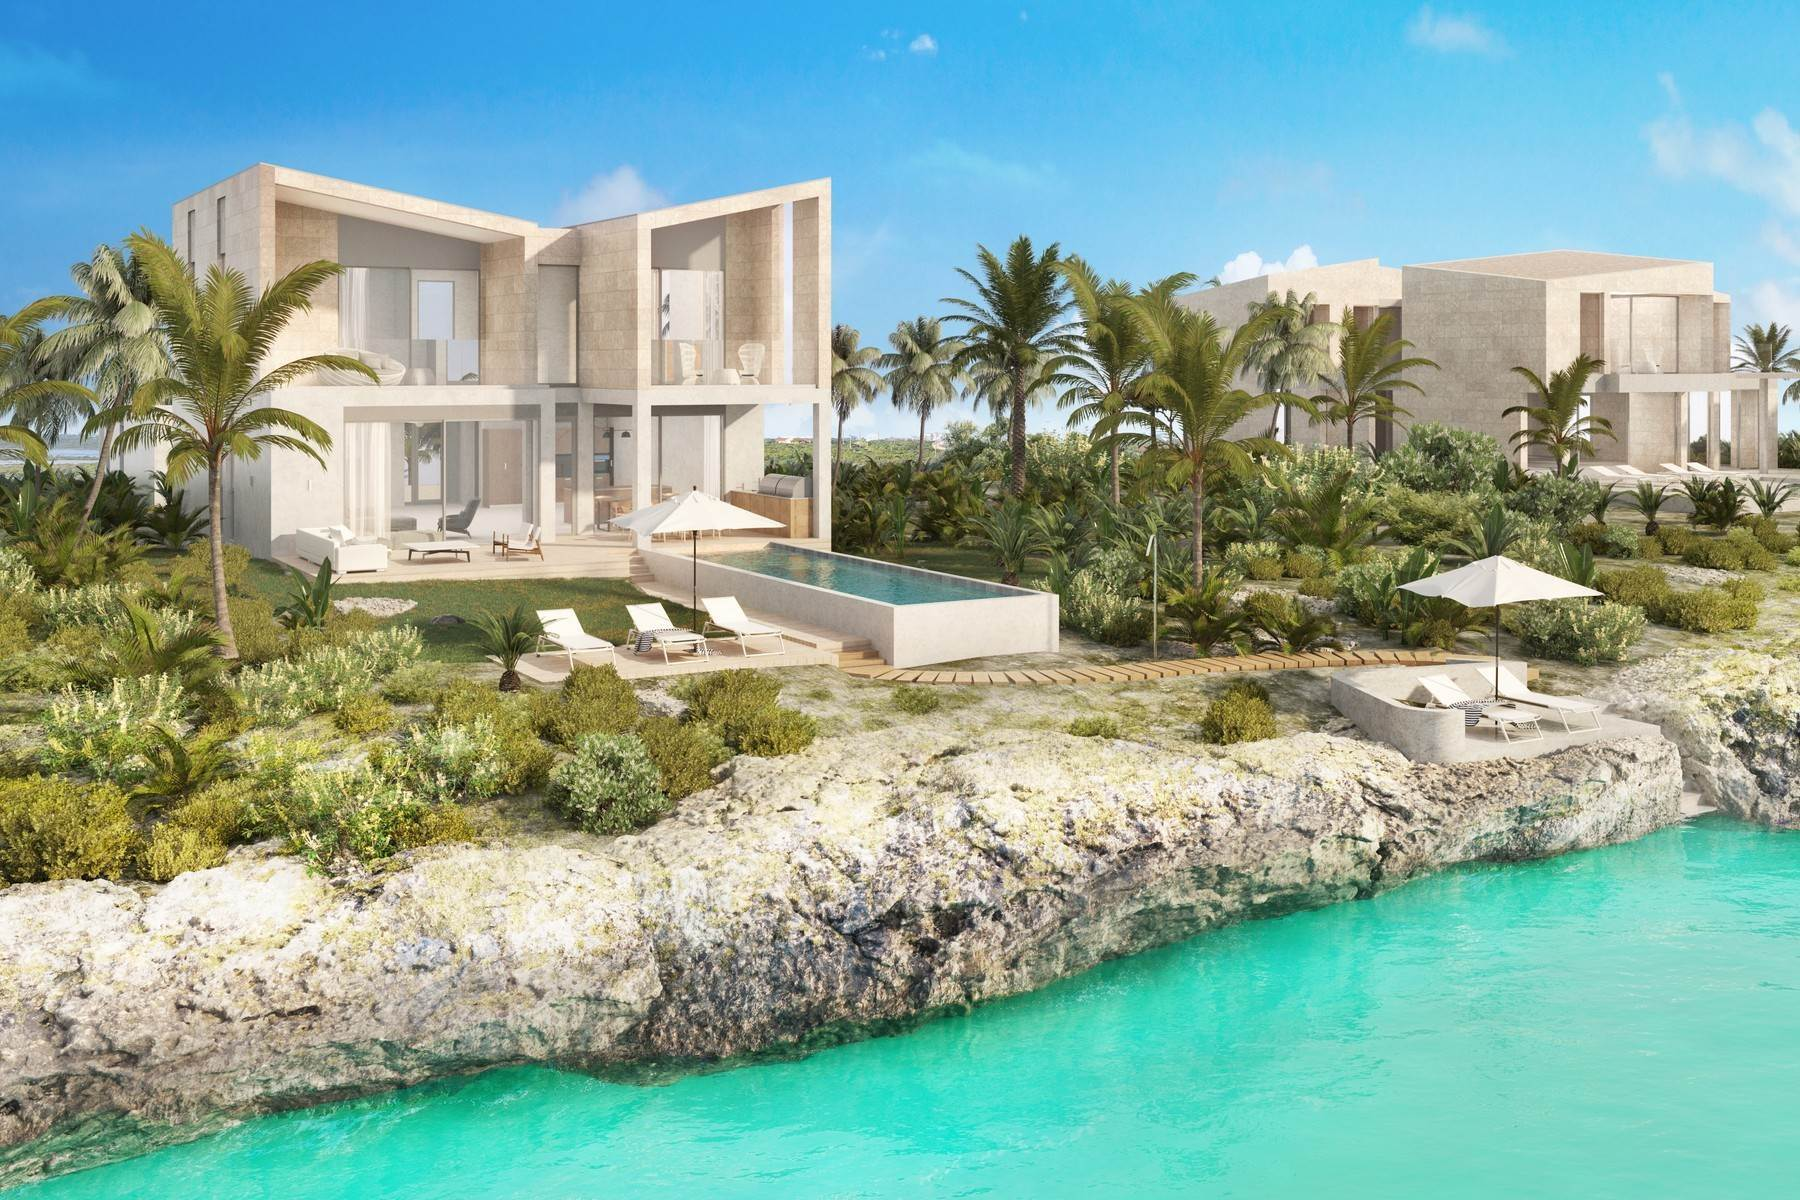 Single Family Homes por un Venta en SOUTH BANK - THE OCEAN ESTATE II - REEF VILLA - VILLA 9 South Bank, Long Bay, Providenciales Islas Turcas y Caicos